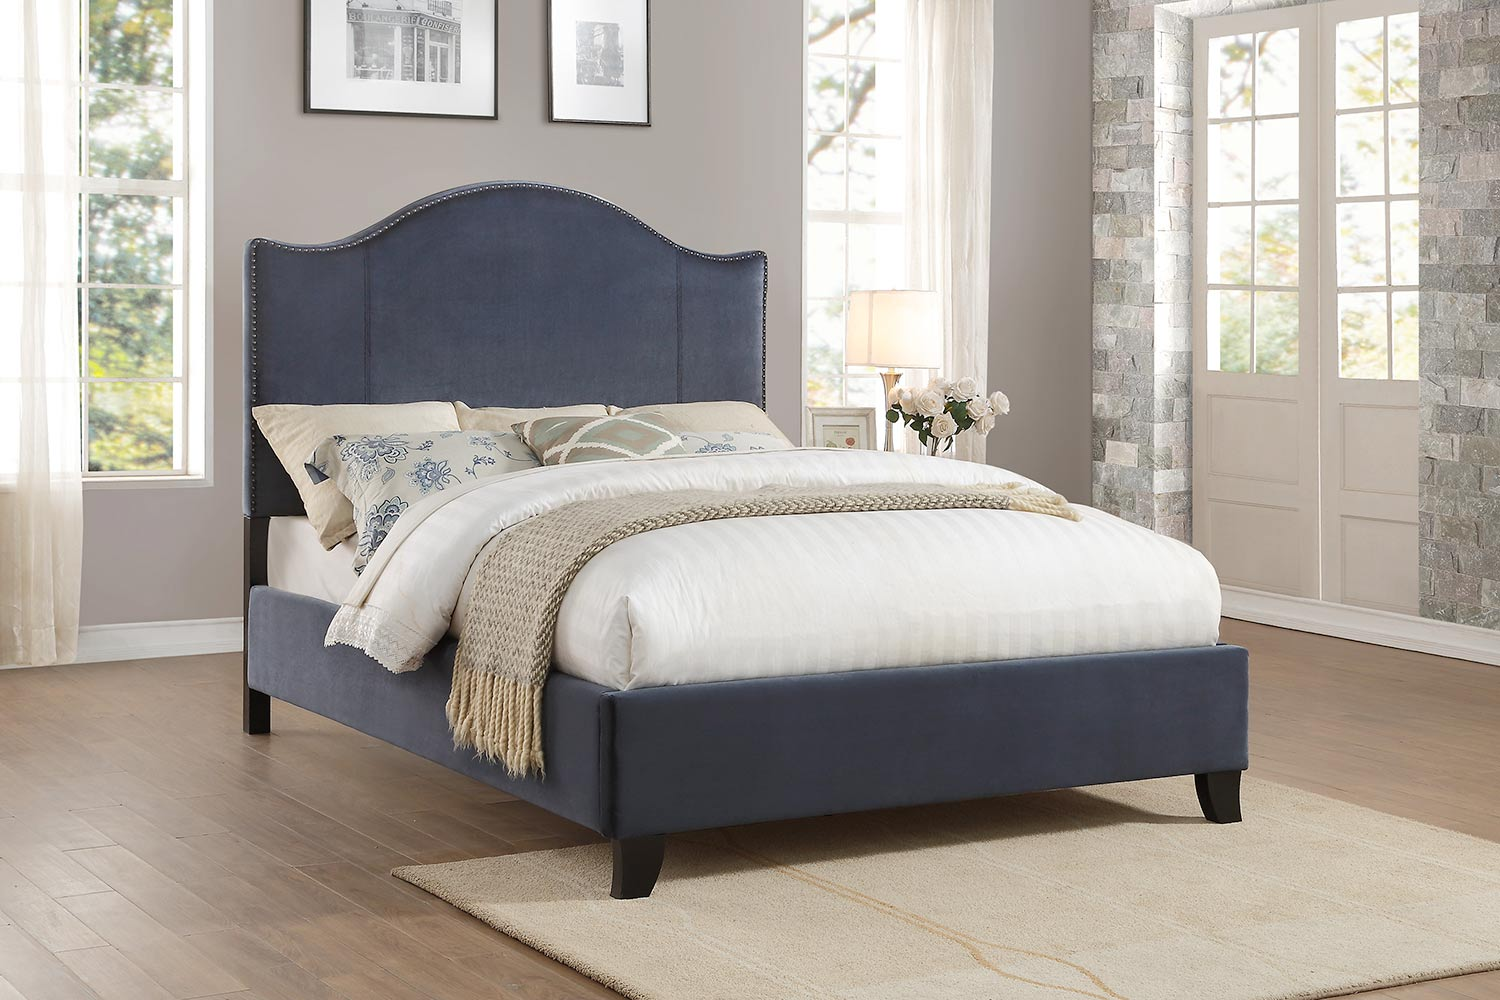 Homelegance Carlow Upholstered Bed - Navy